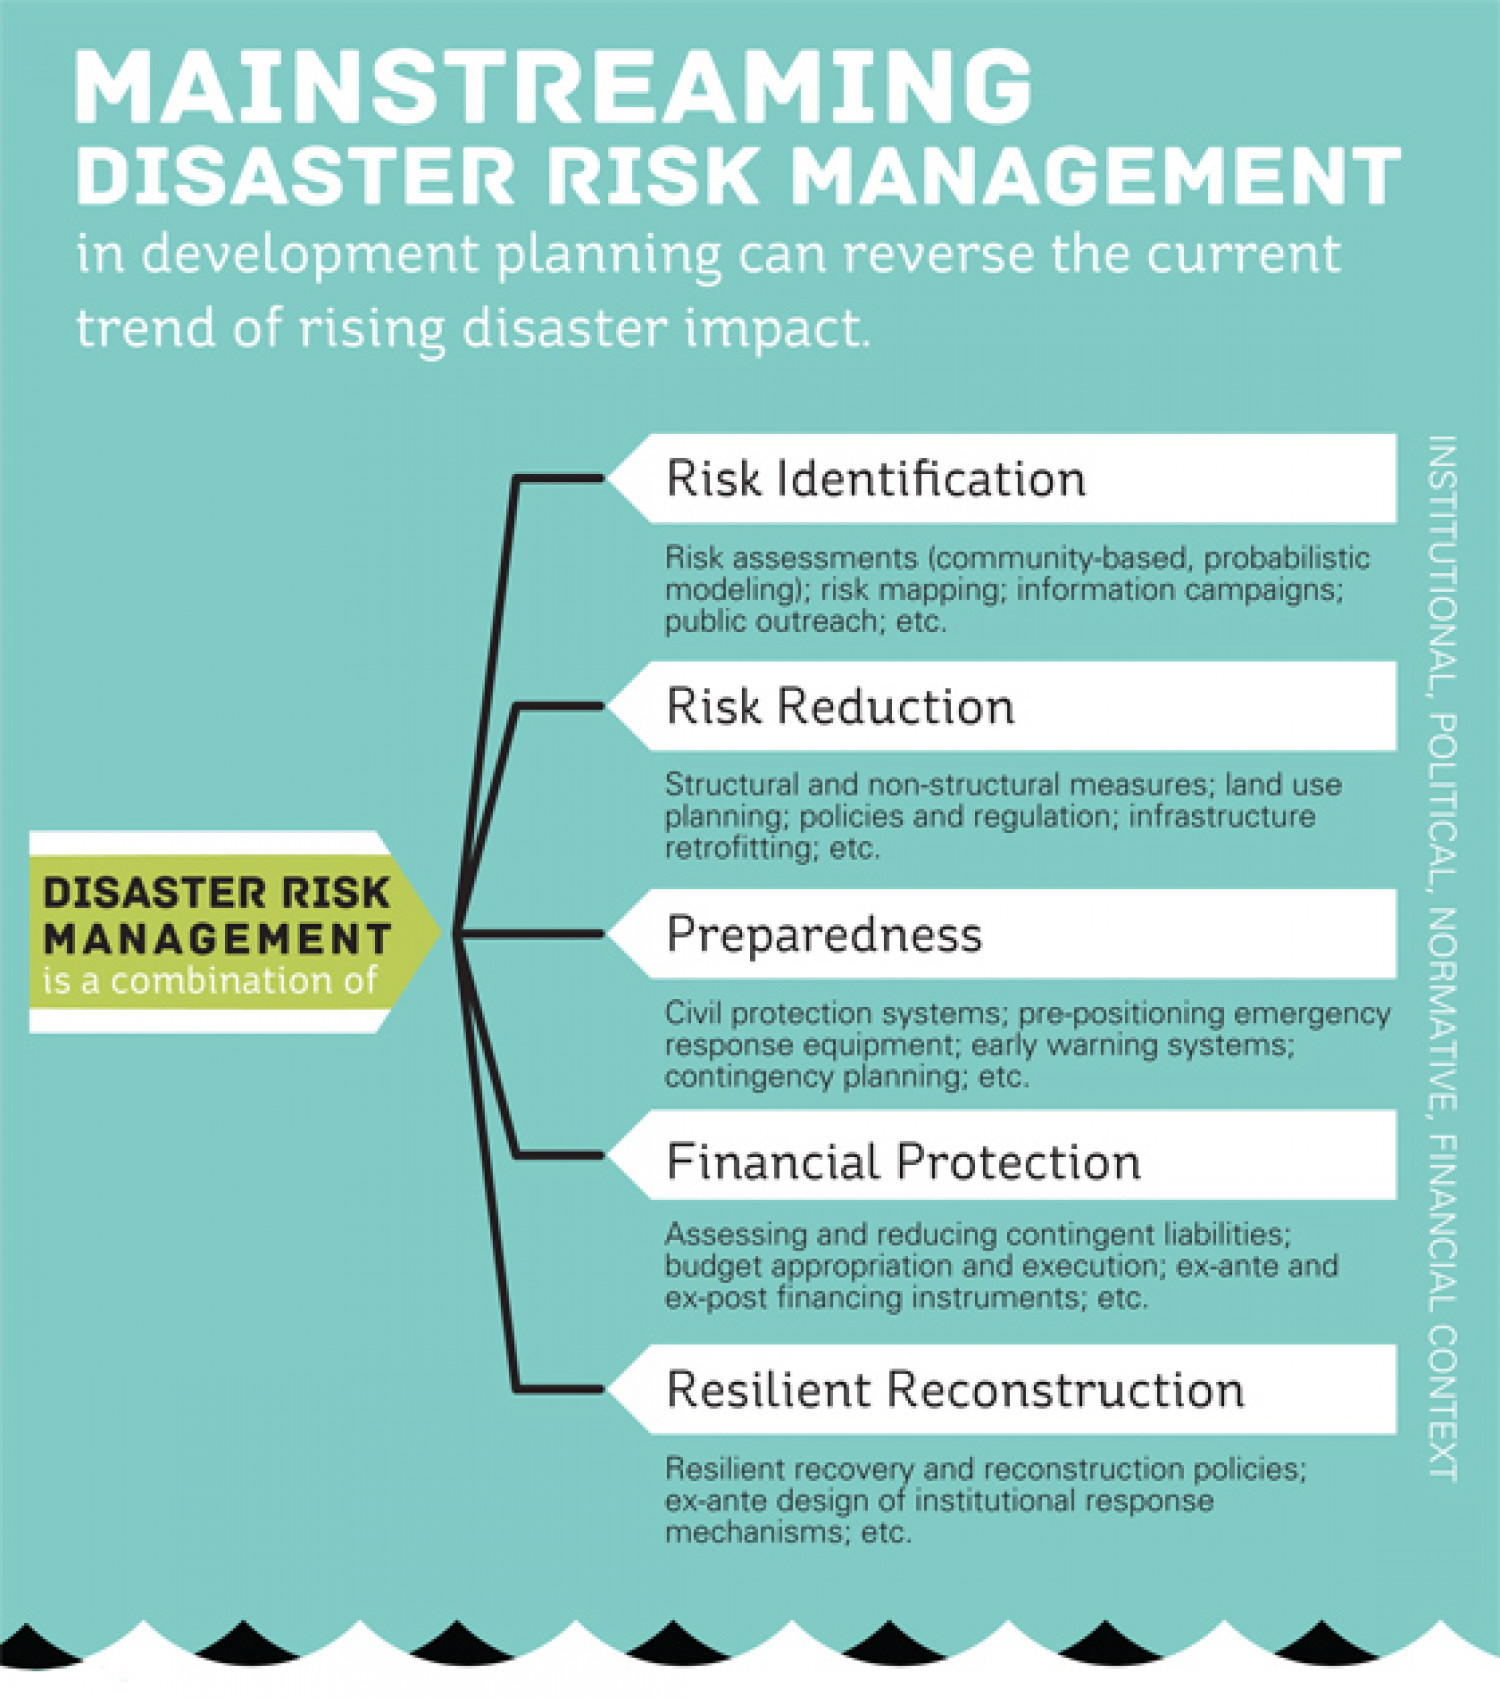 Mainstreaming Disaster Risk Management - Part 1 Infographic